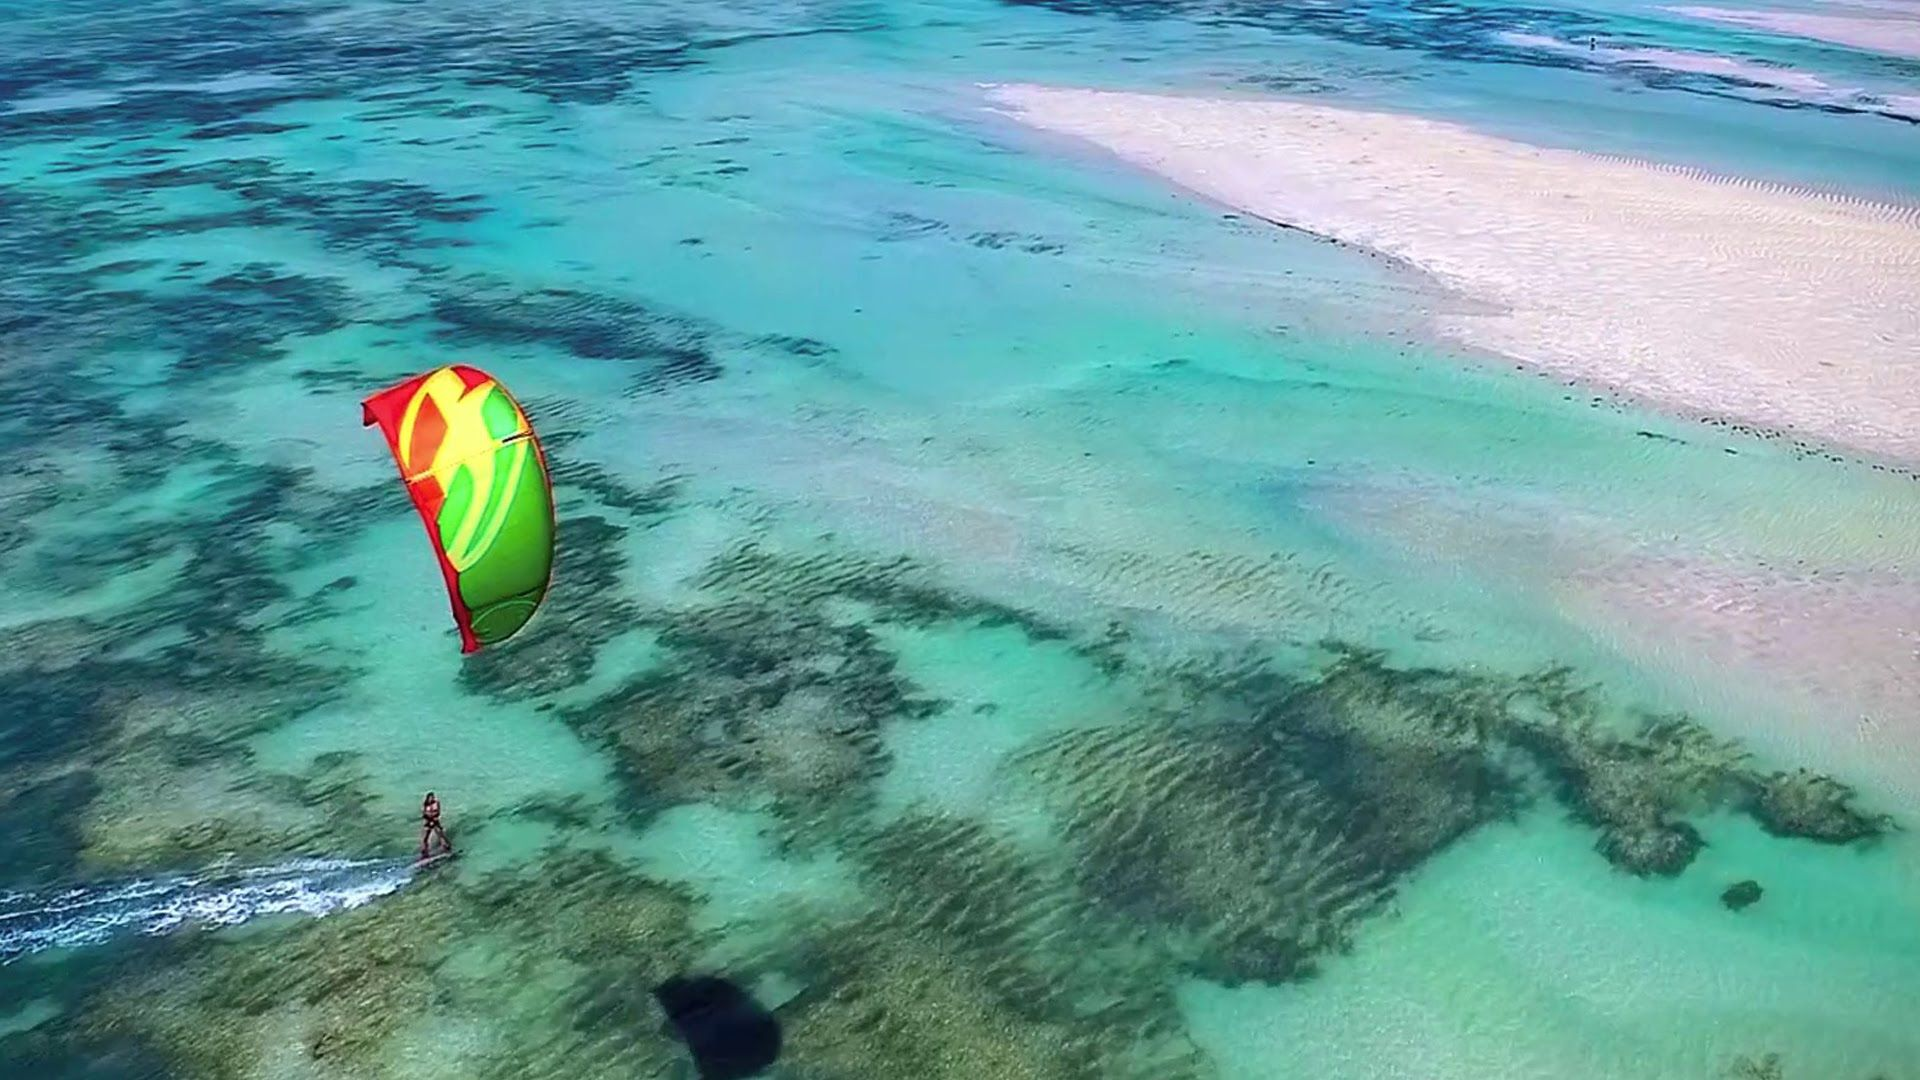 Pemba and matemo holiday package pemba mozambique accommodation - We Spent Two Weeks In North Mozambique At Il Pirata Lodge The Spot Is On The Beach Of Murrebue 20 Minutes Away From The Big City Pemba